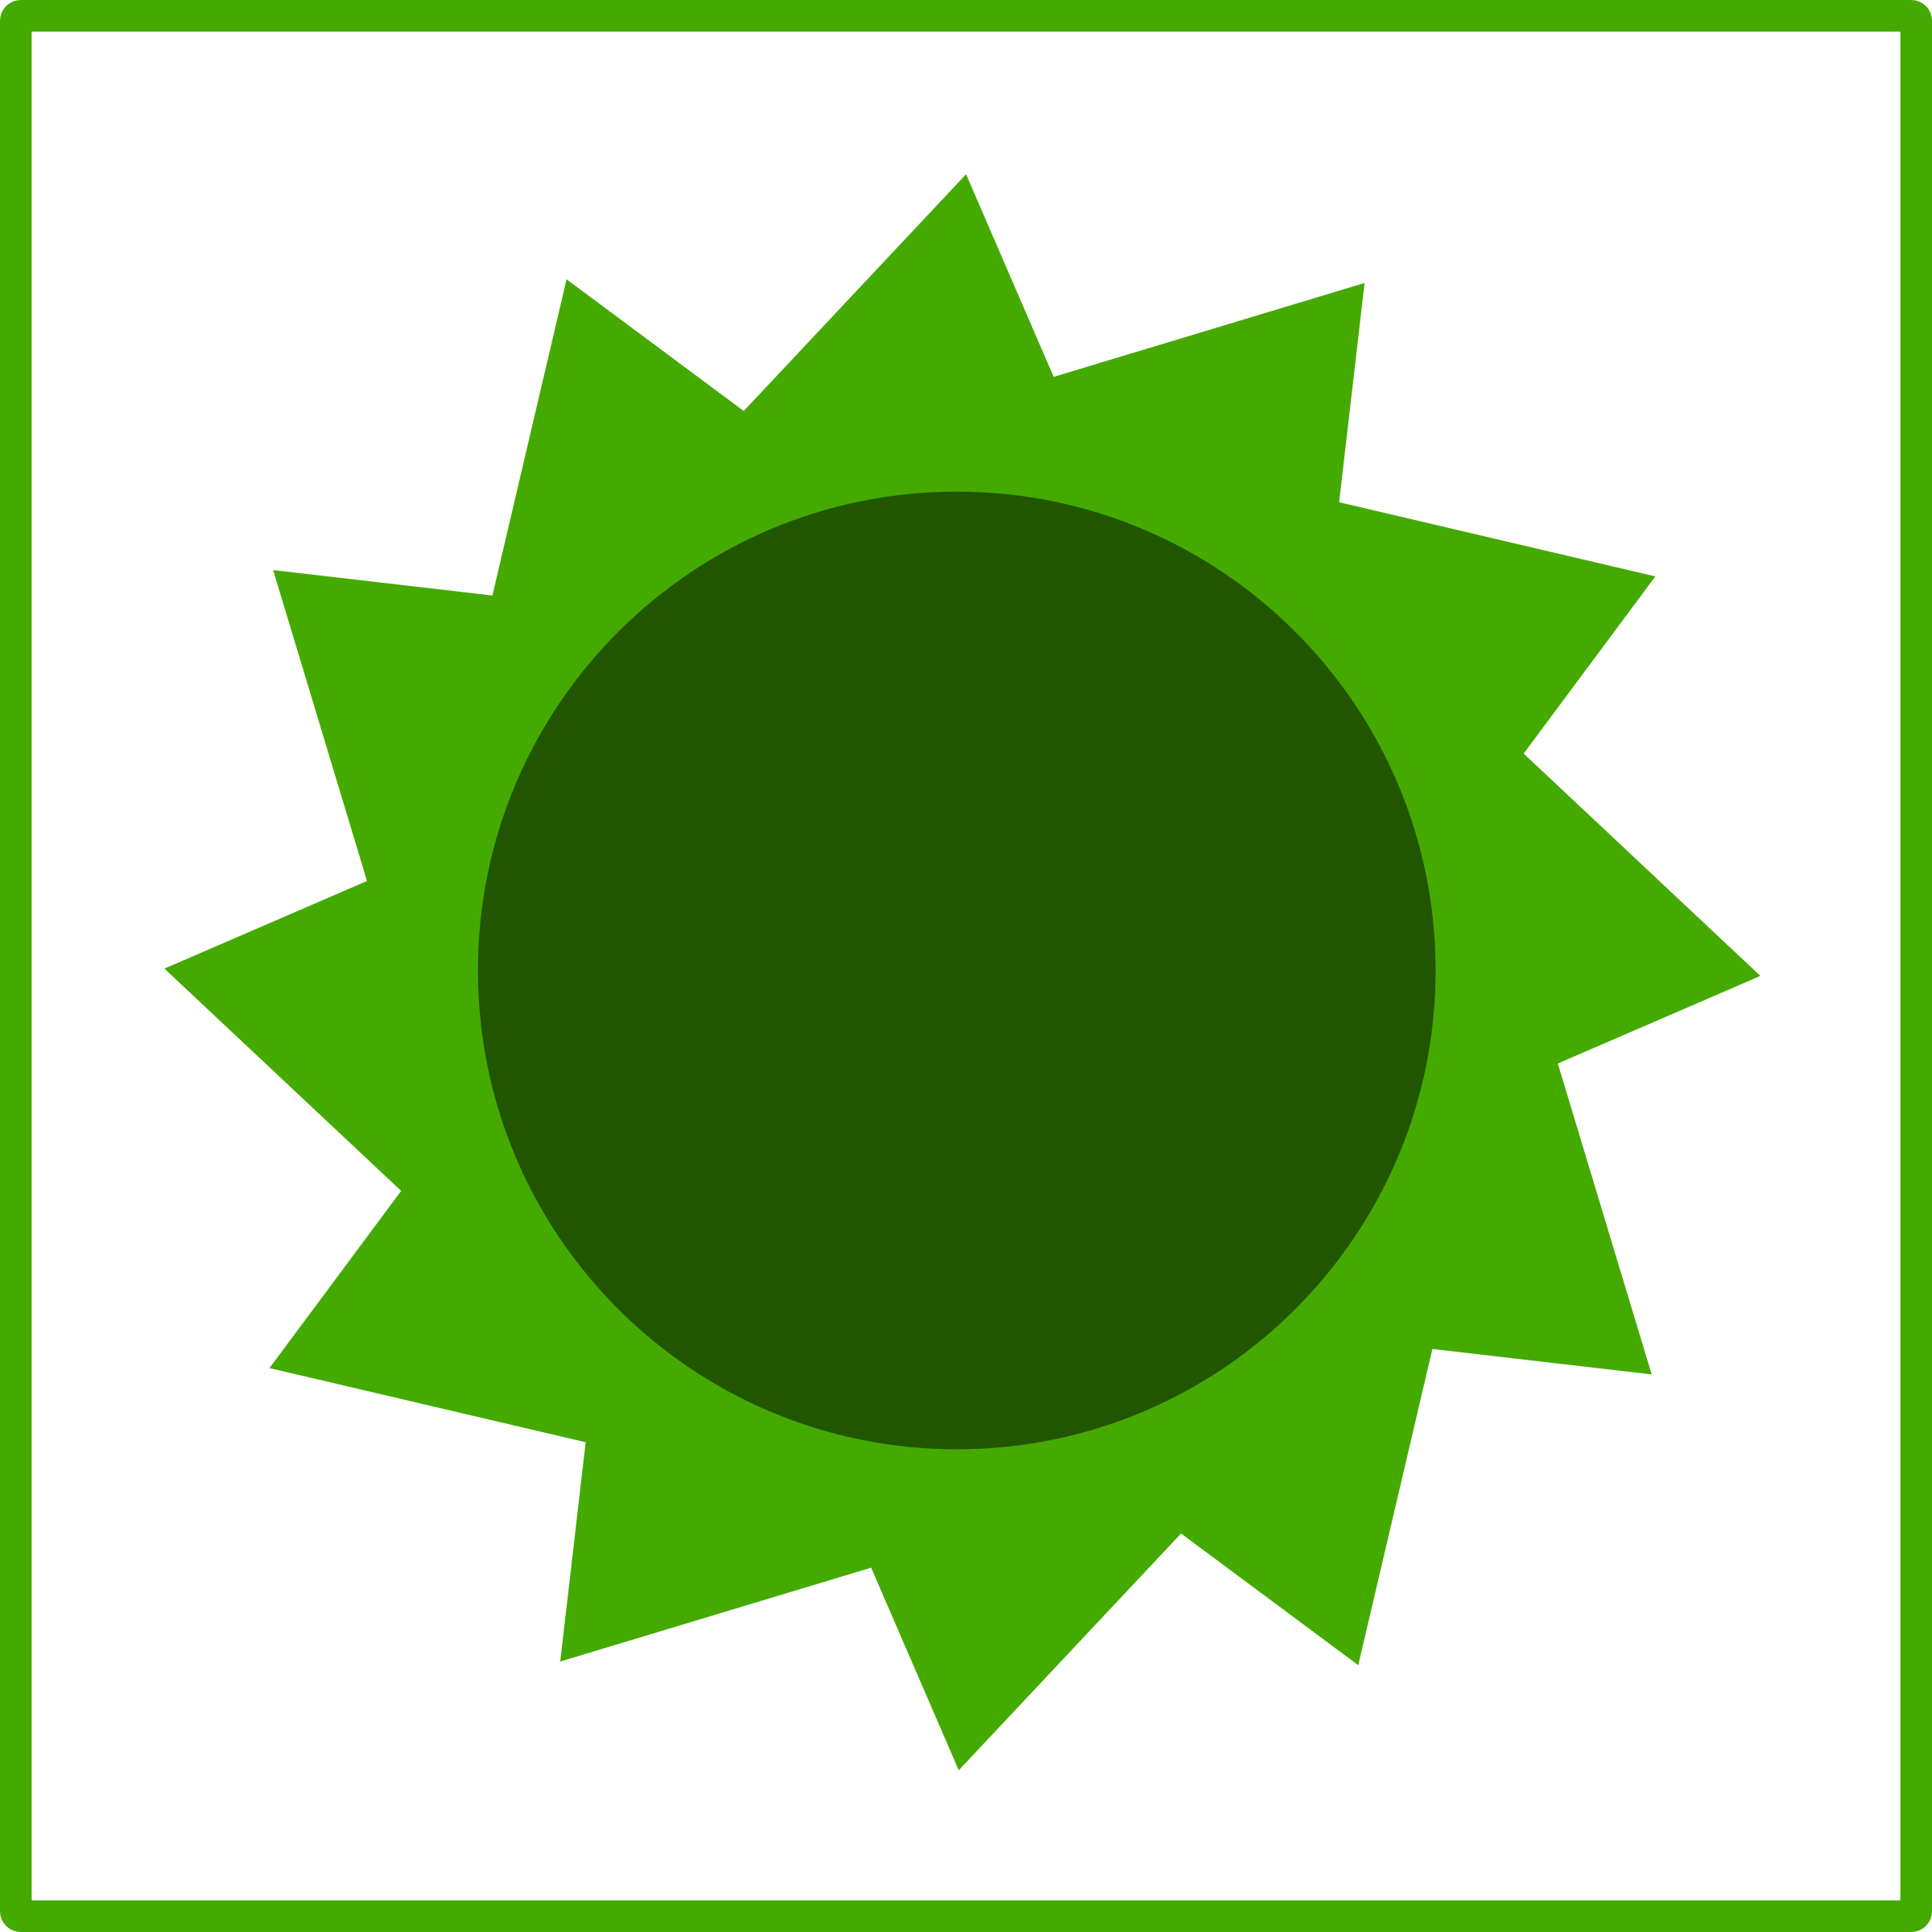 Green sun png. Eco icon icons free